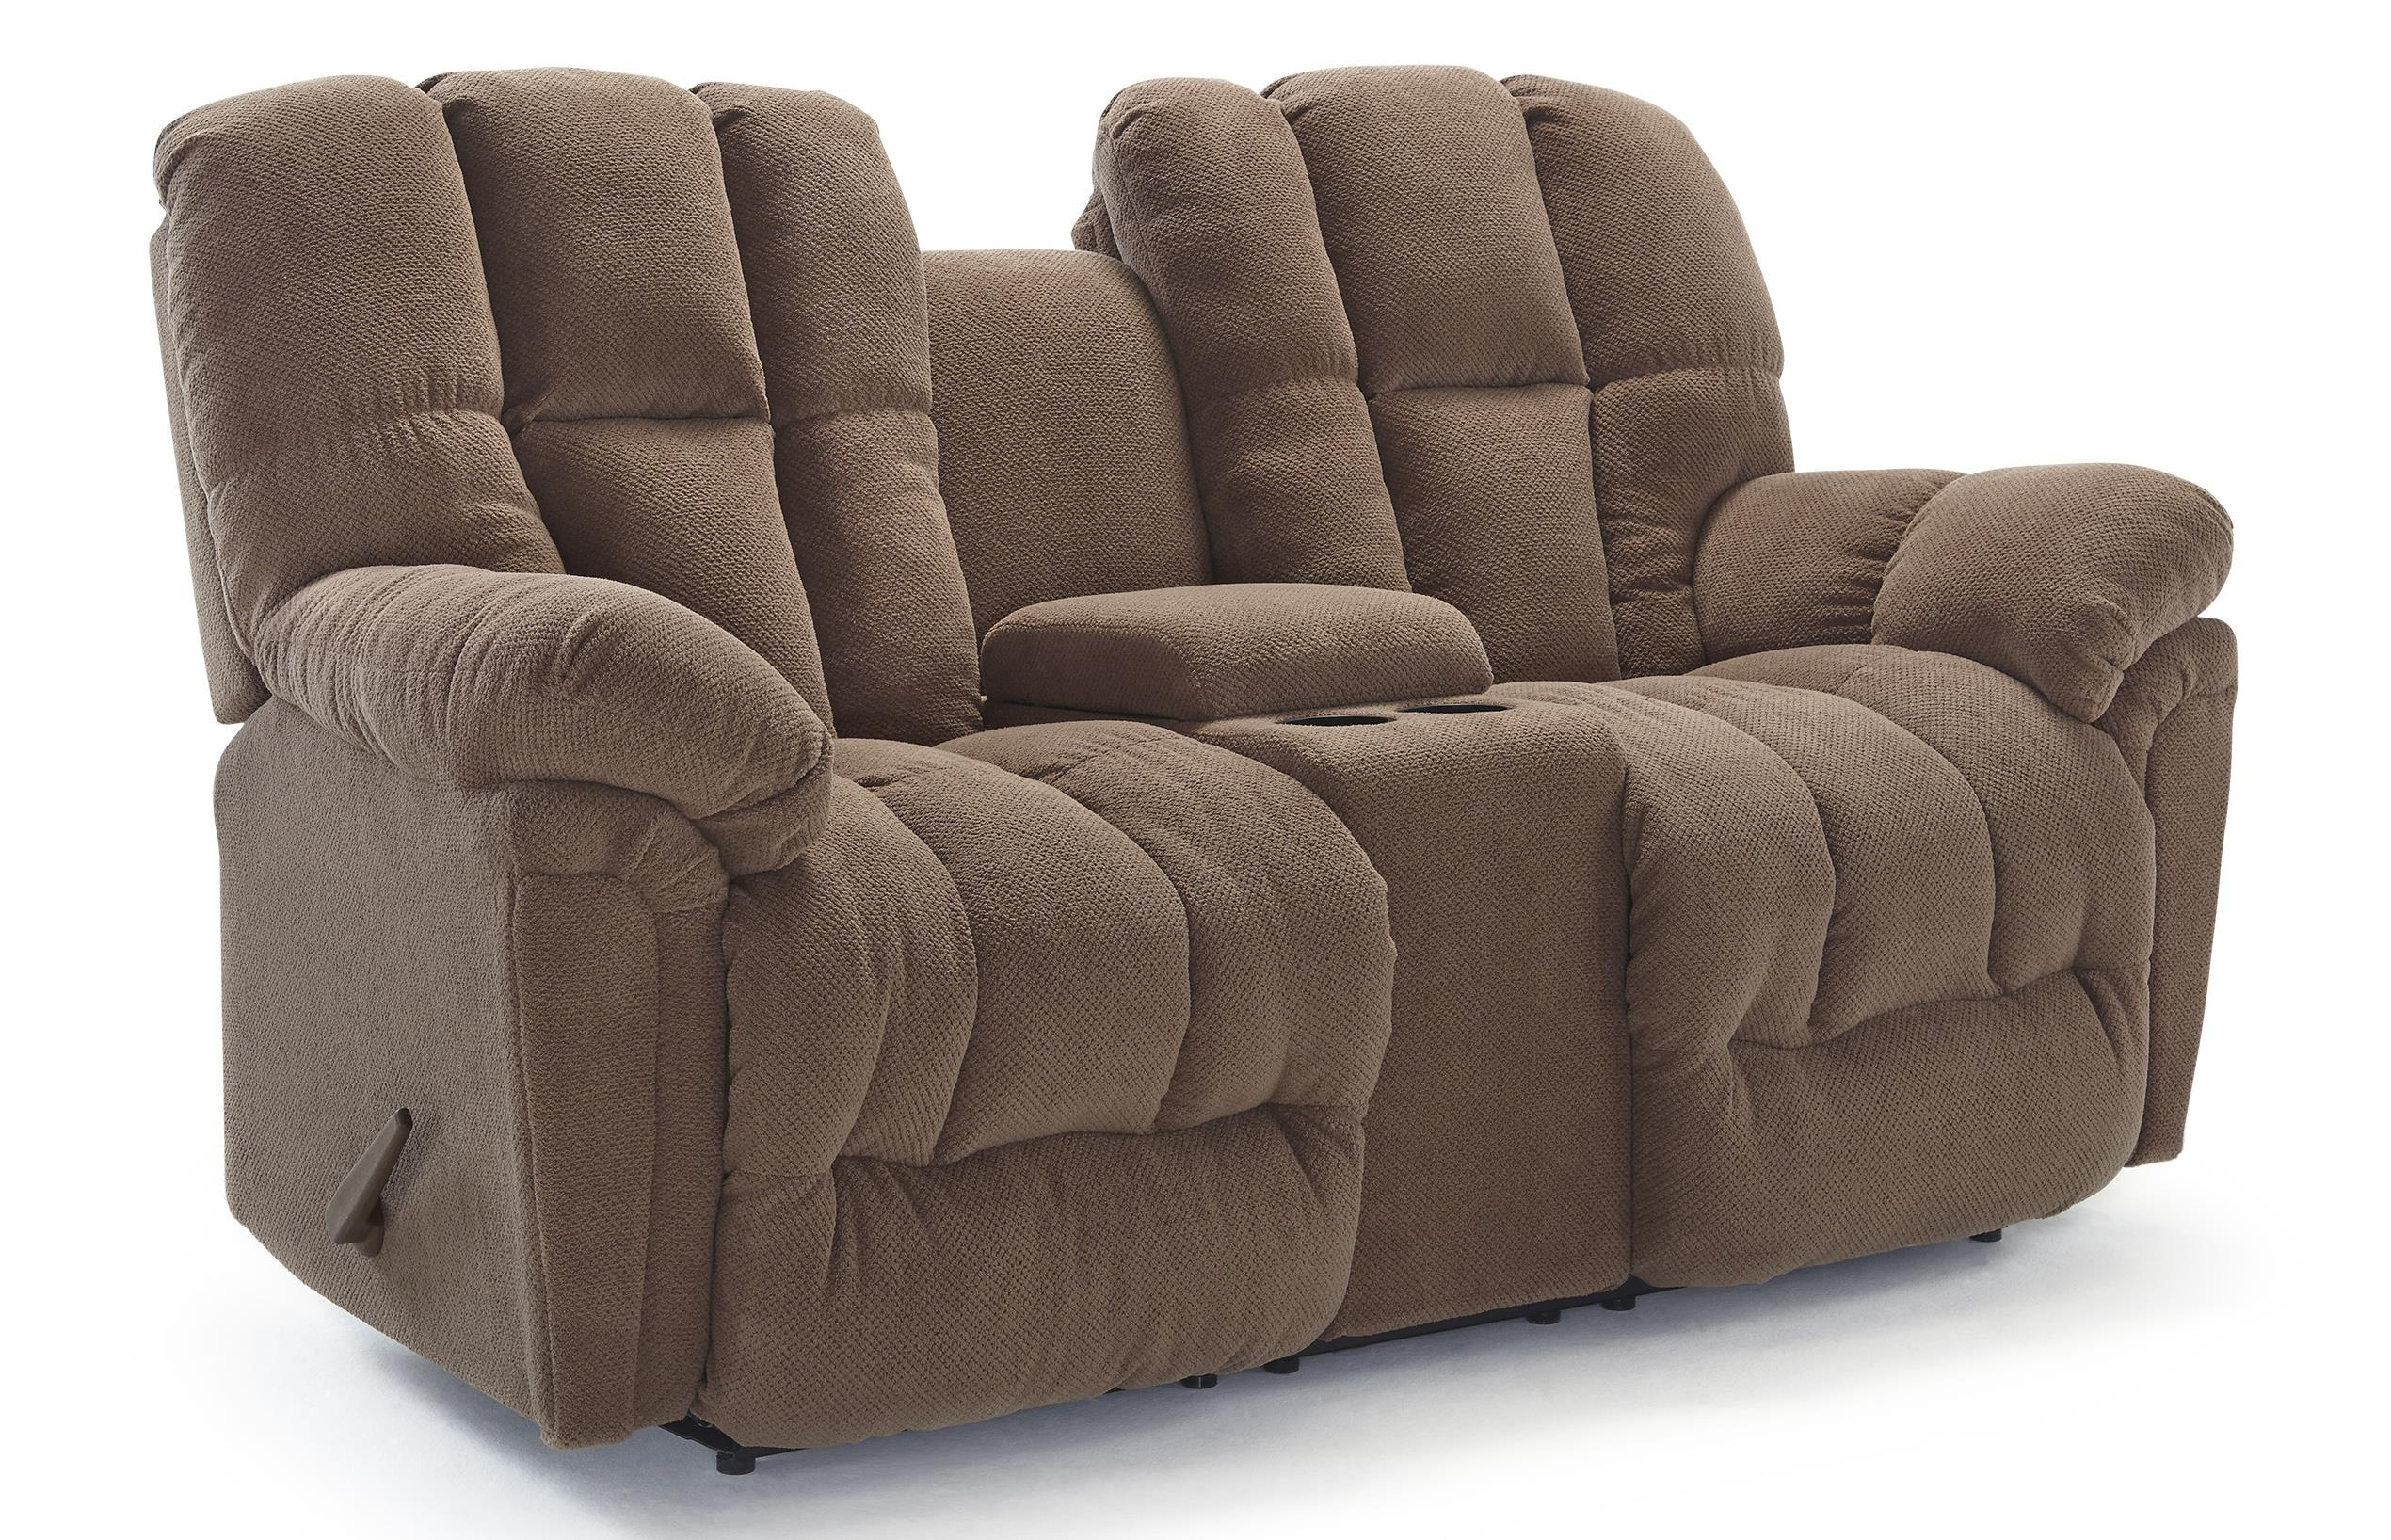 Best Home Furnishings Lucas Pwr Space Saver Reclining Loveseat w/ Cnsle - Item Number: L856RQ4